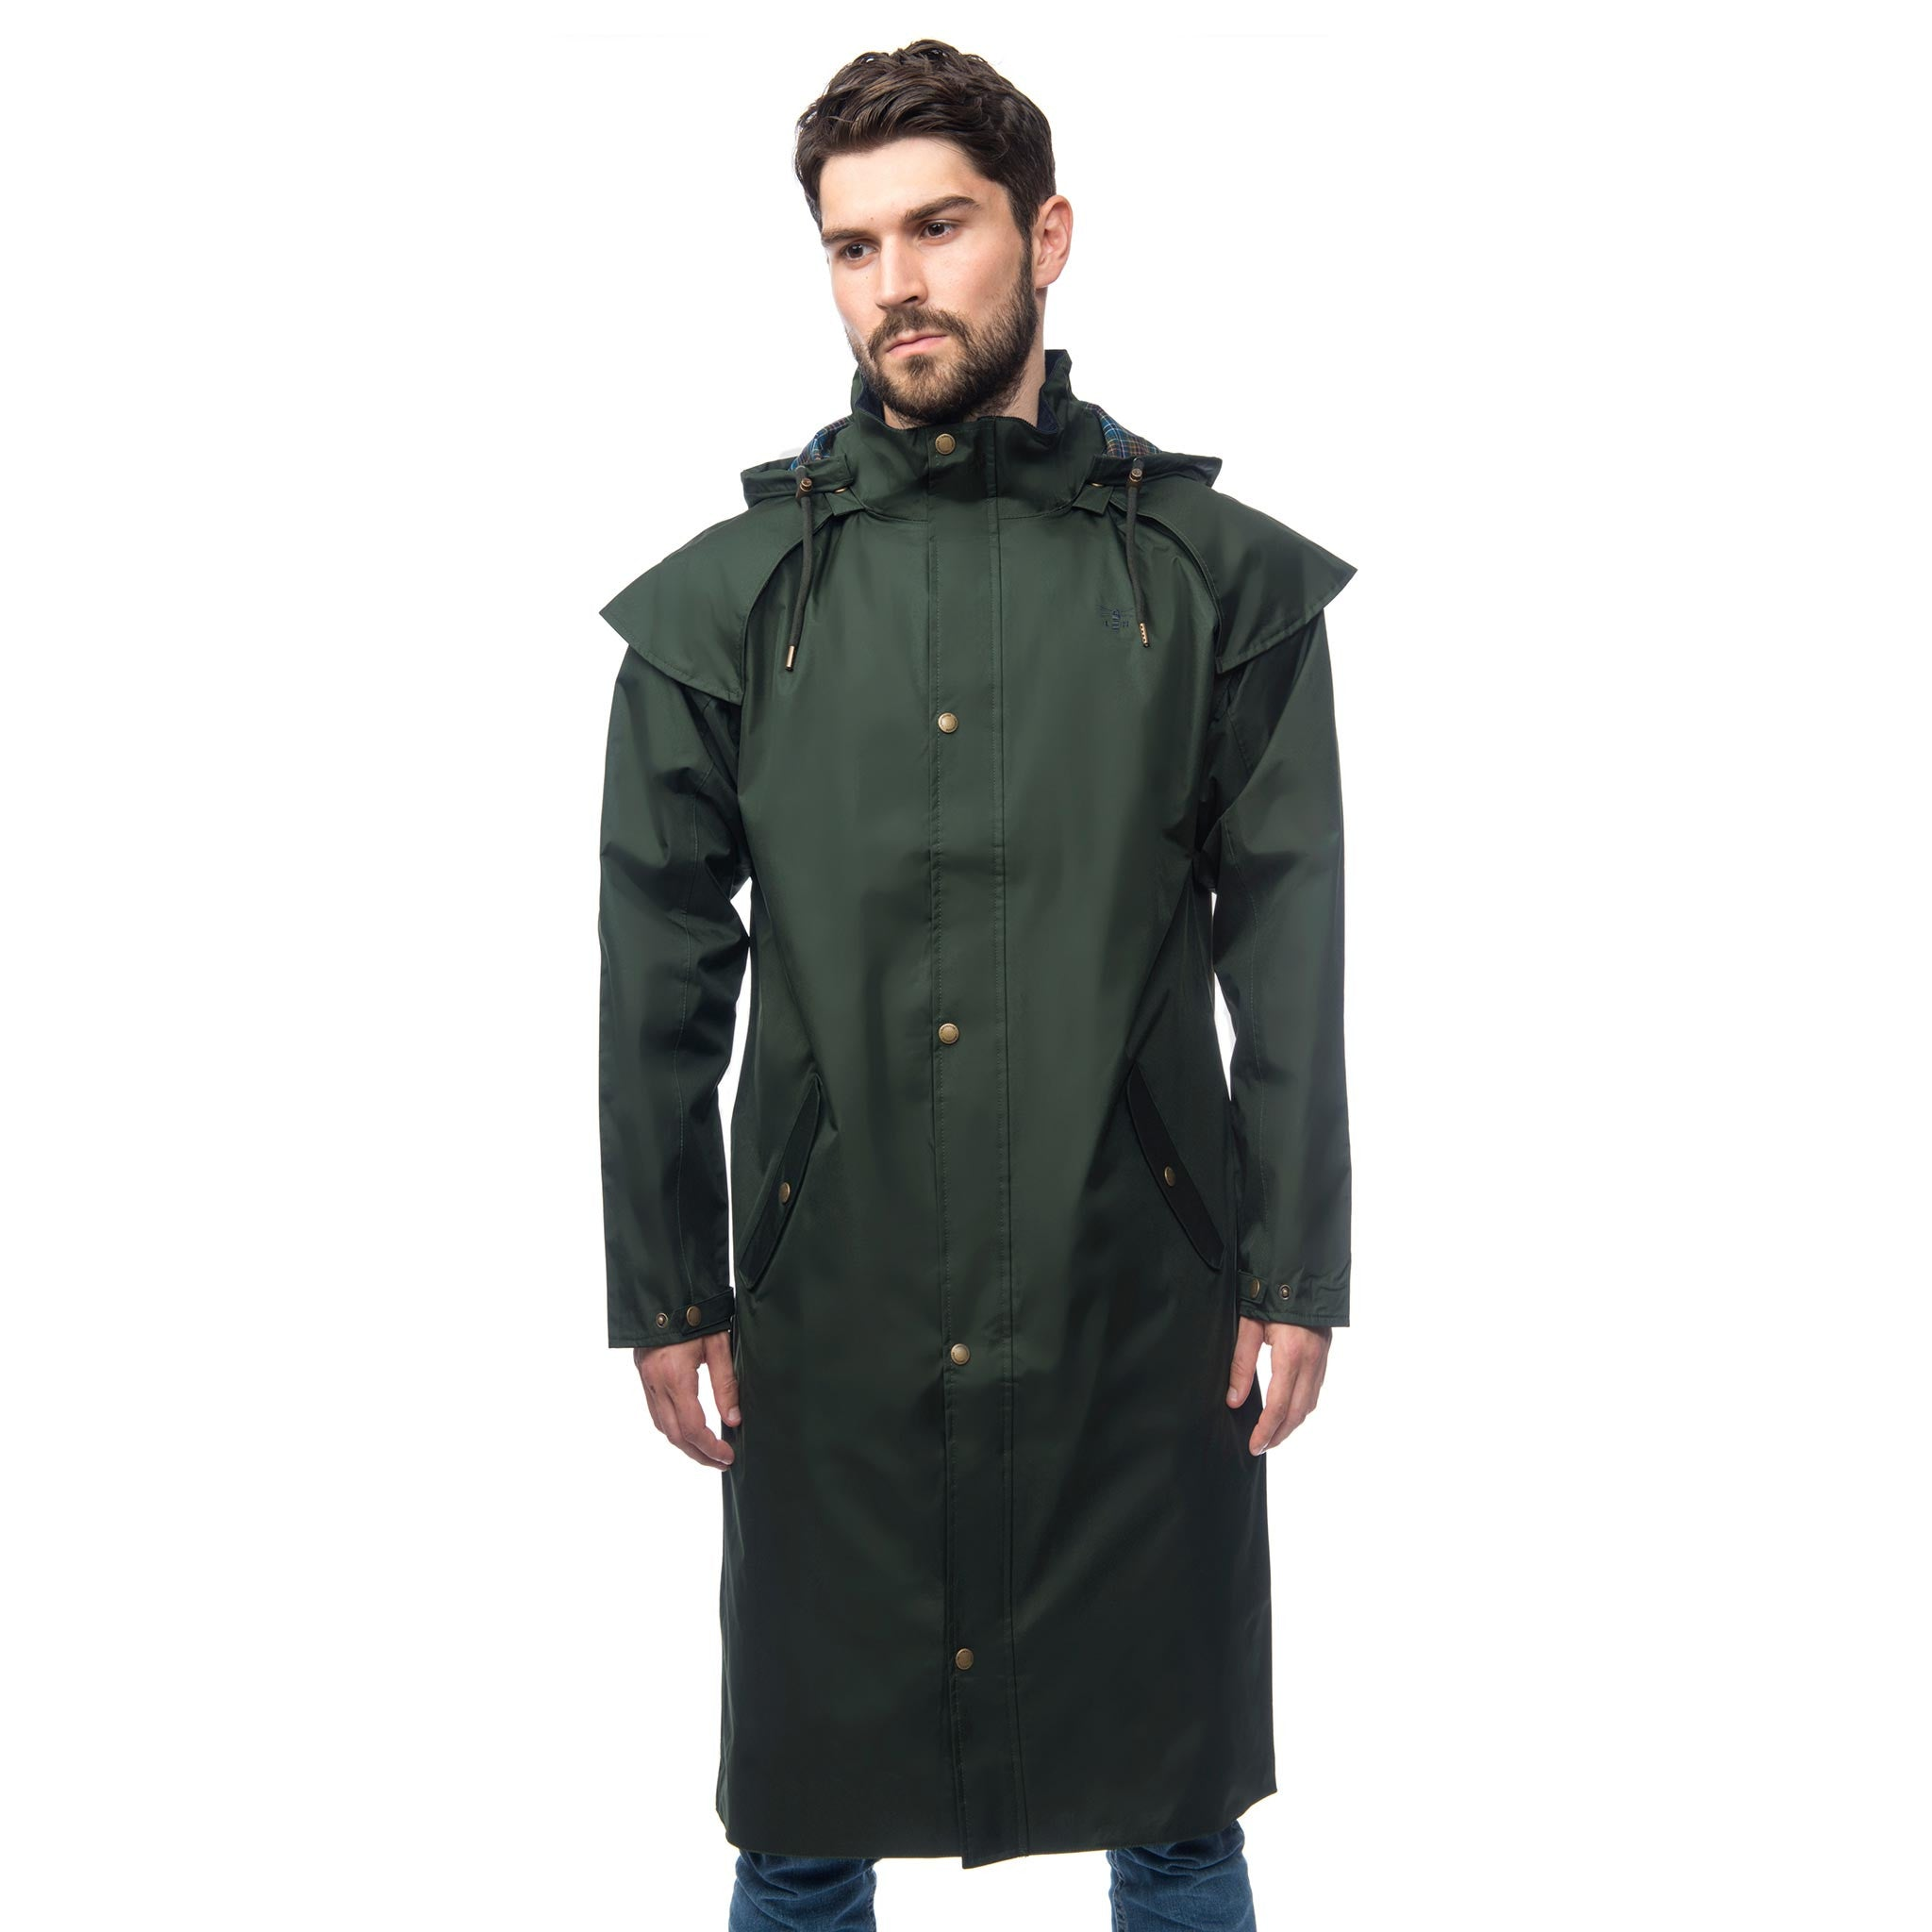 Lighthouse Mens Stockman Full Length Waterproof Rain Coat in green.  Zipped and buttoned. Hood down.